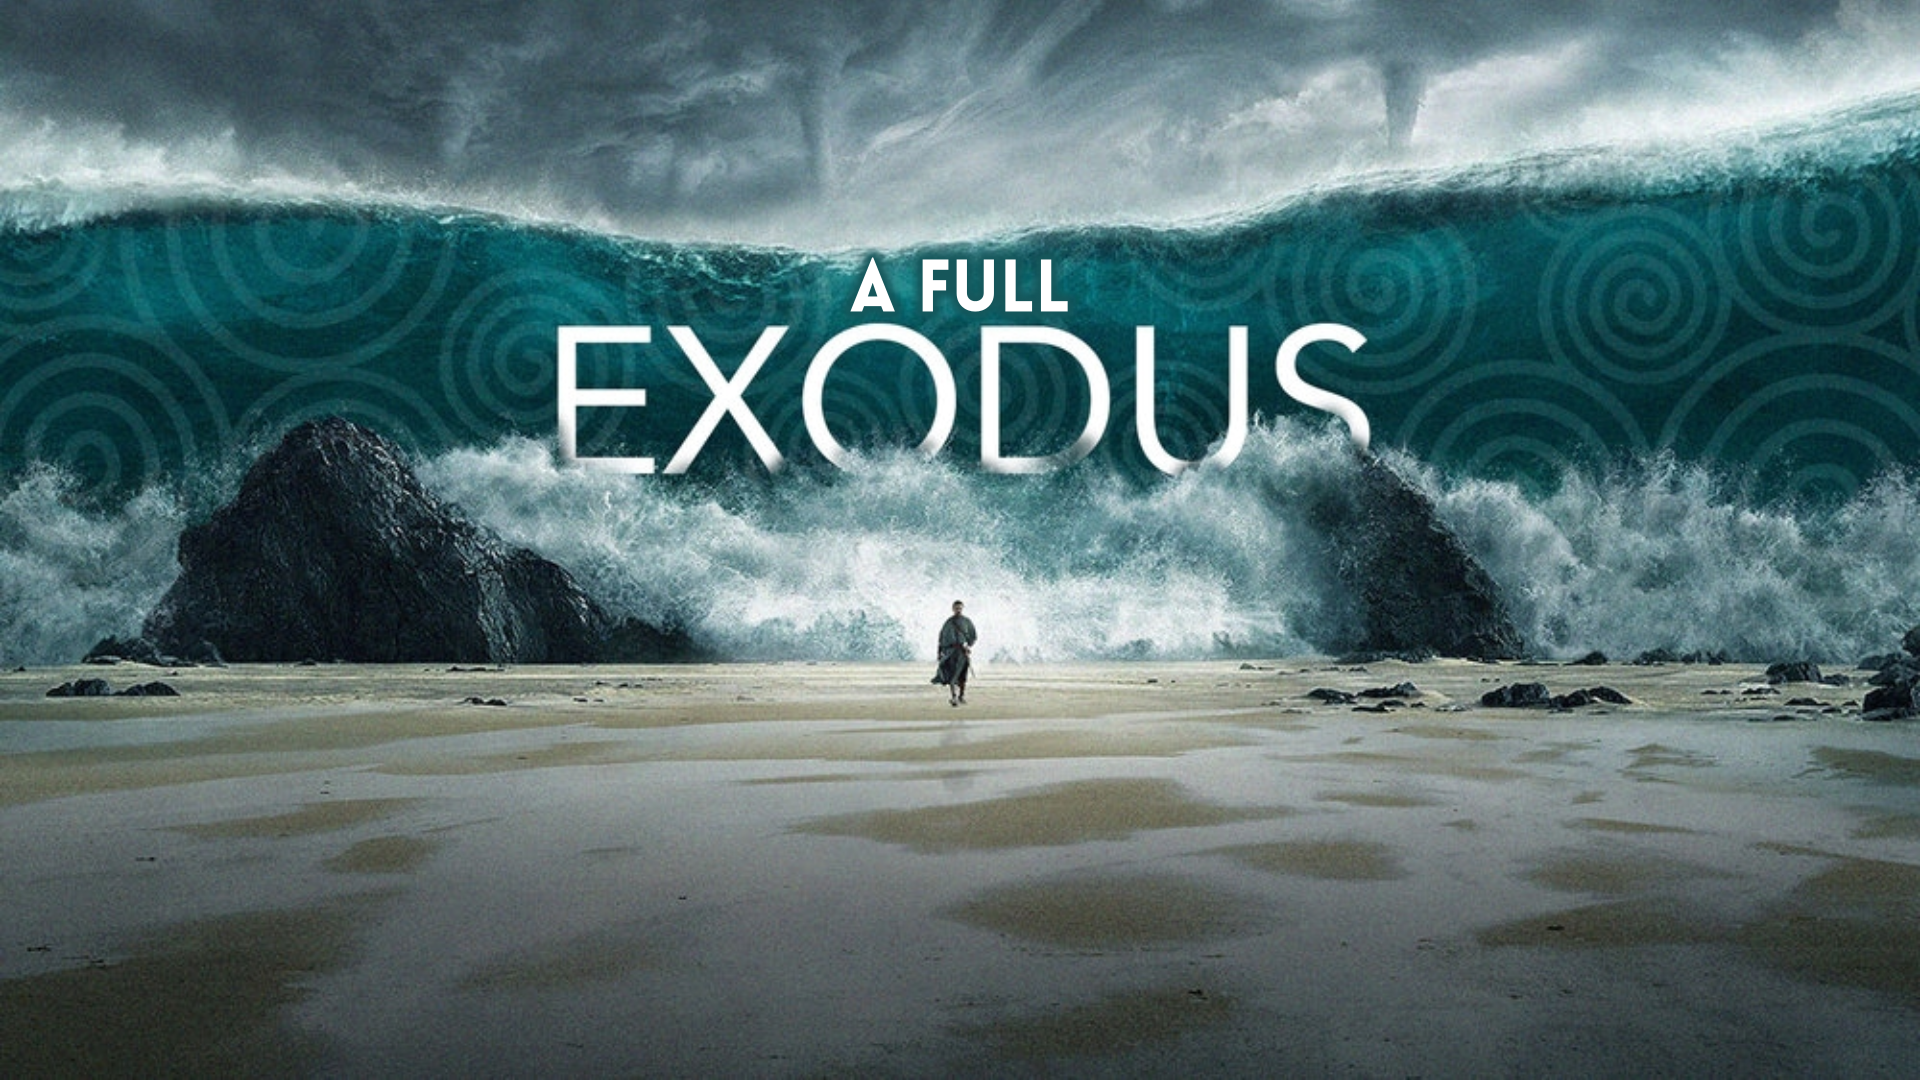 The Journey, Part 2: A Full Exodus